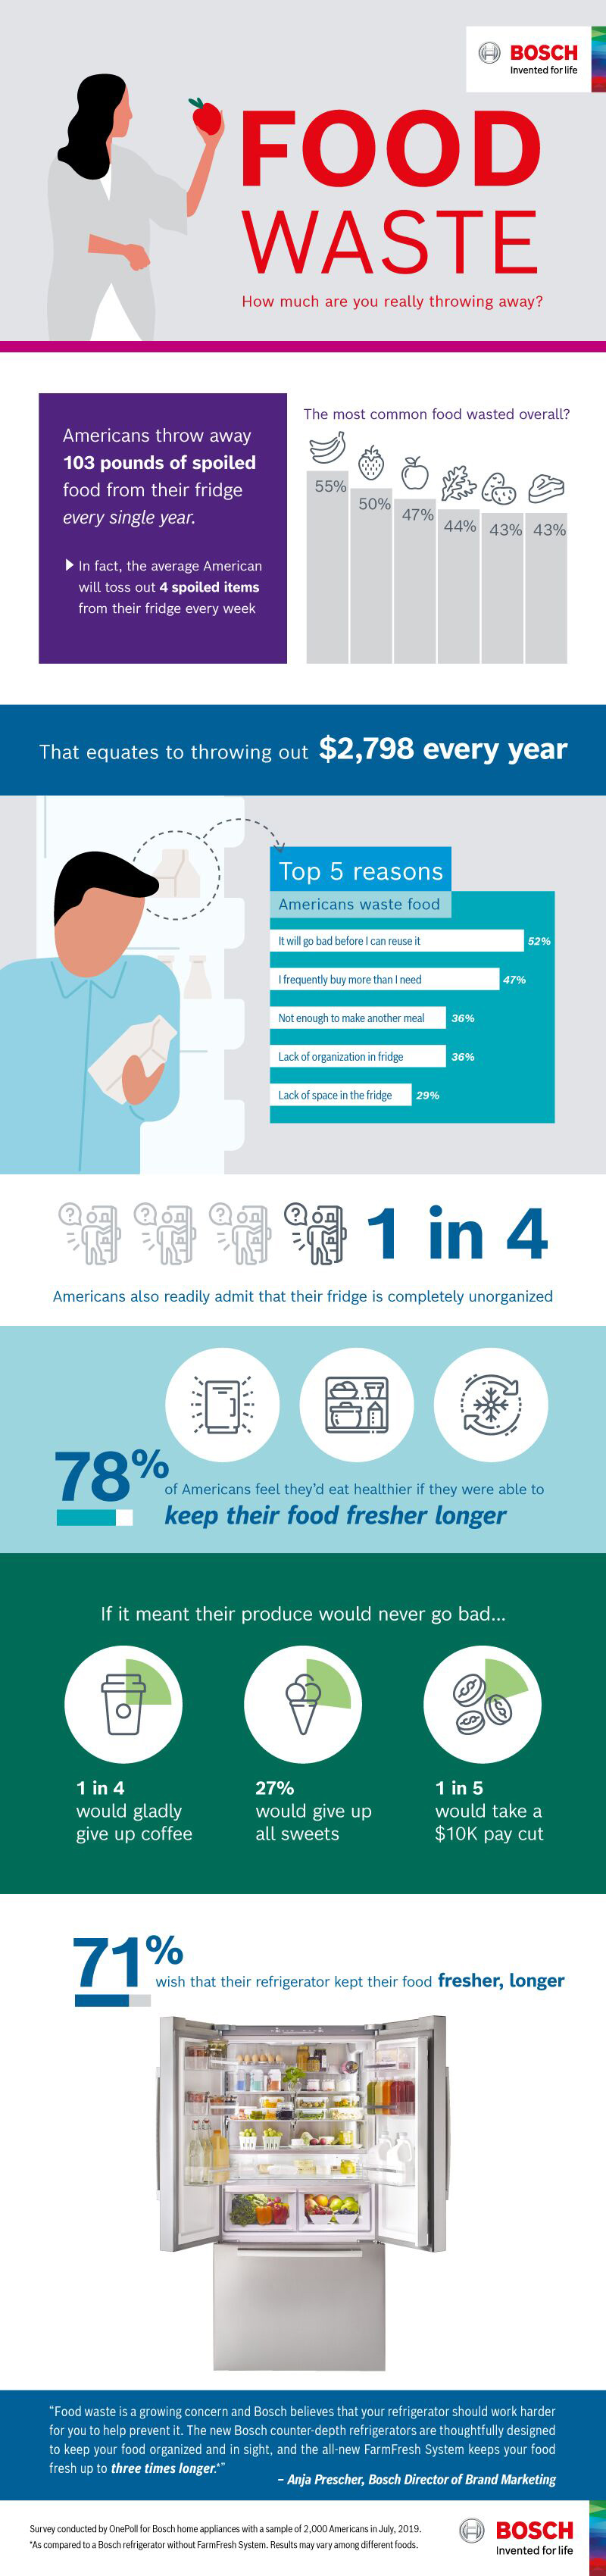 Food-Waste-Infographic.jpeg